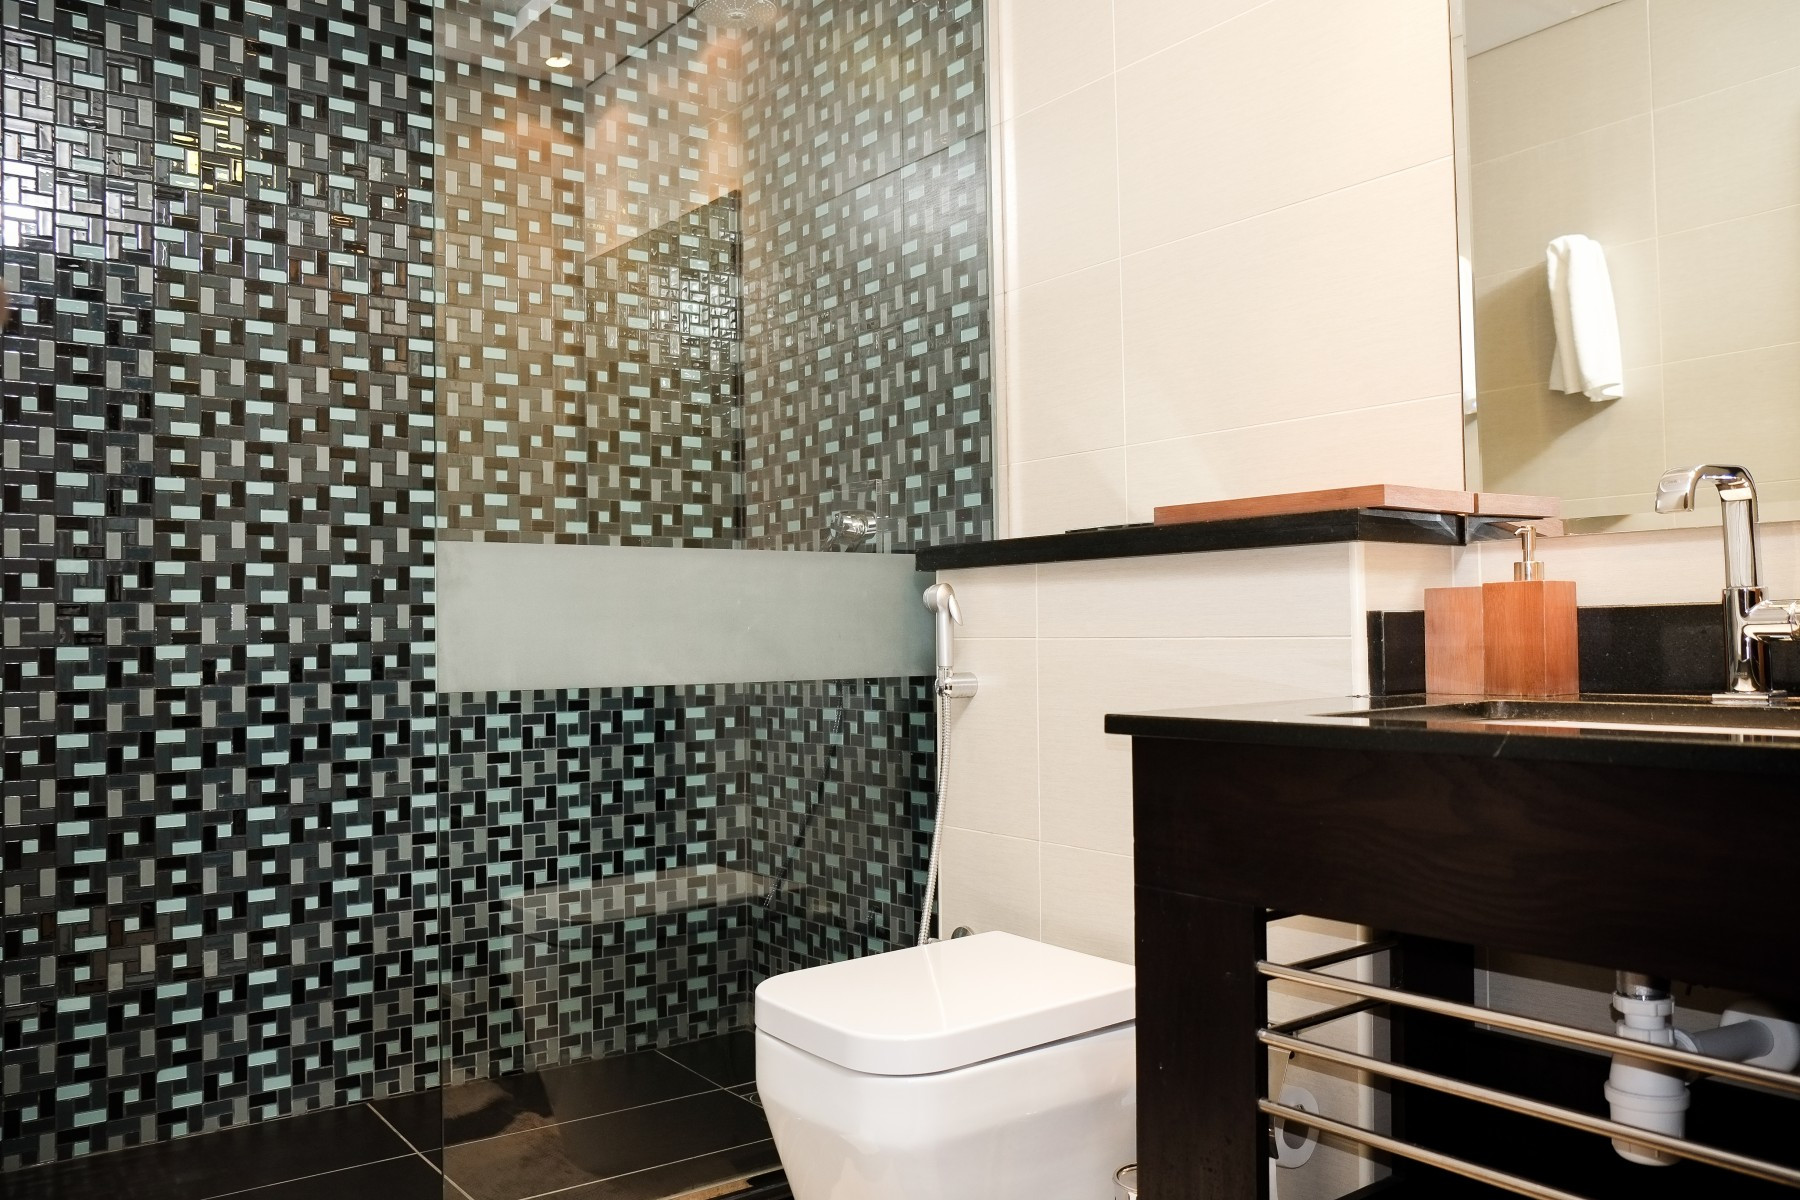 Serviced apartment in Cayan monthly - Apartments in Dubai